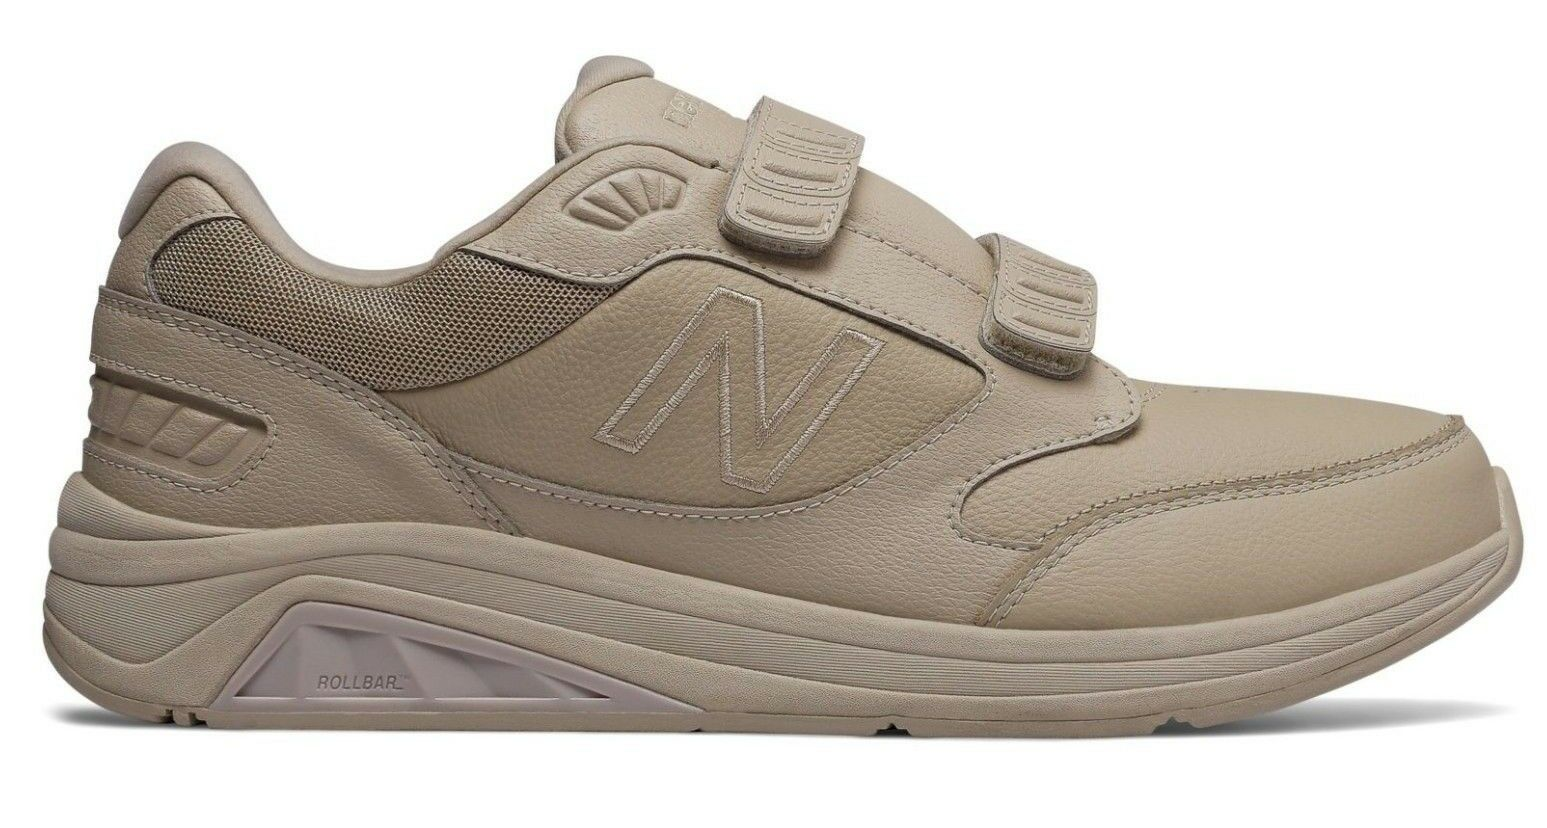 New Balance MW928HN3 Men's 928Hv3 Bone Motion Control Health Walking Shoes New